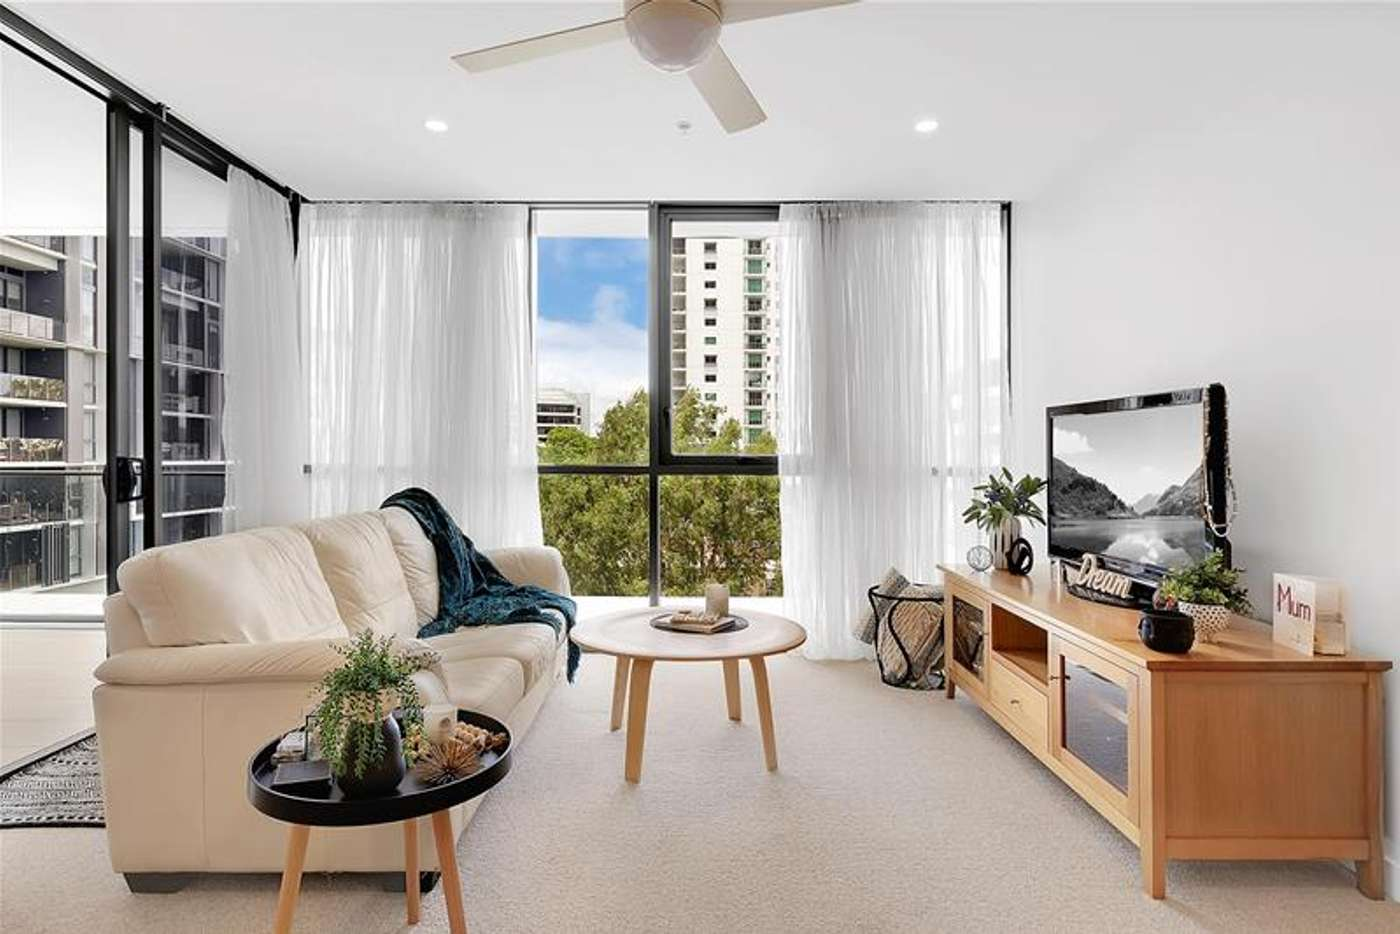 Main view of Homely apartment listing, 302/55 Railway Terrace, Milton QLD 4064